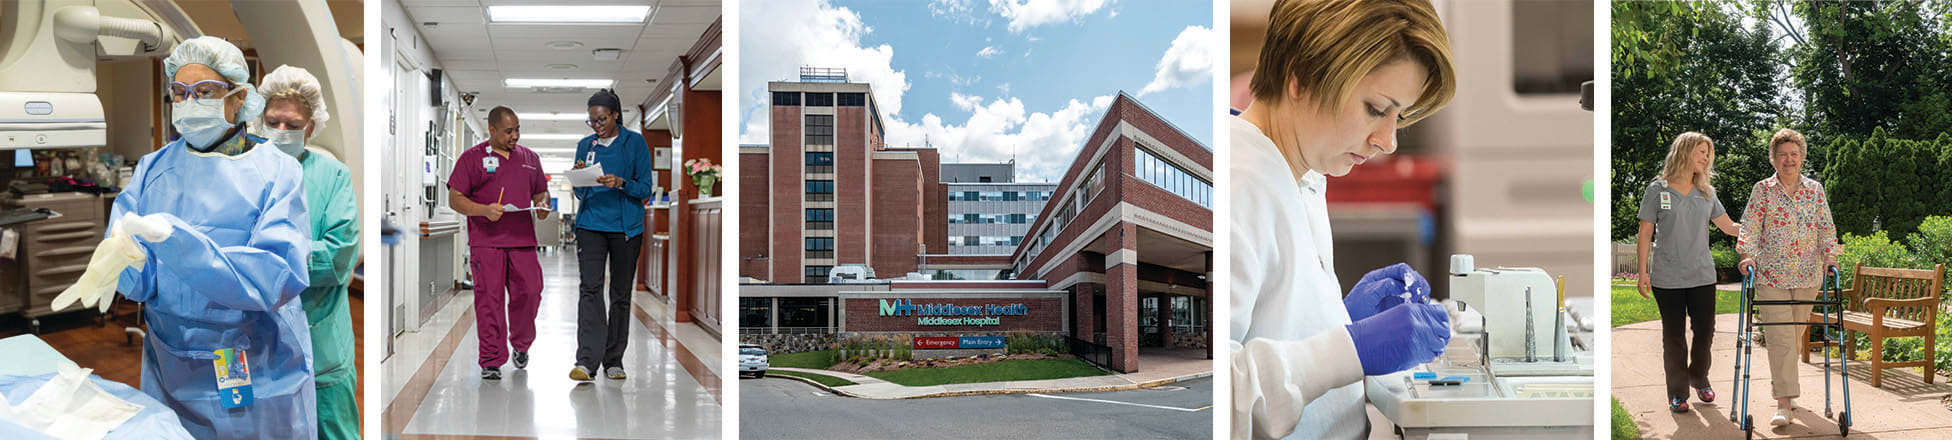 Middlesex Health comprises expert, compassionate staff and the latest technology in state-of-the-art facilities.